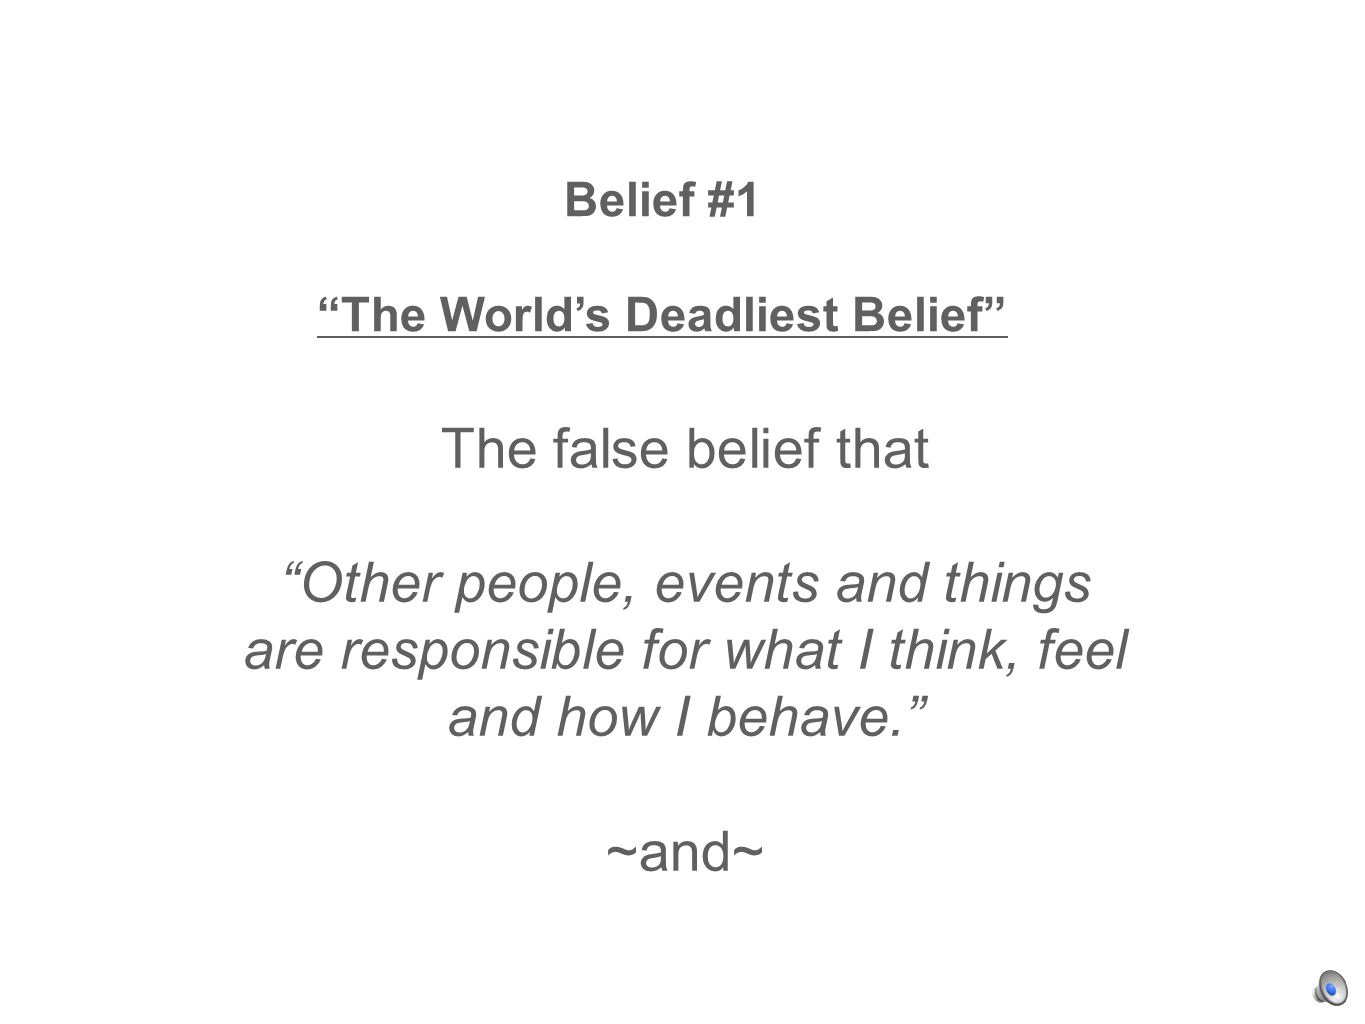 Belief #1 The Worlds Deadliest Belief The false belief that Other people, events and things are responsible for what I think, feel and how I behave.